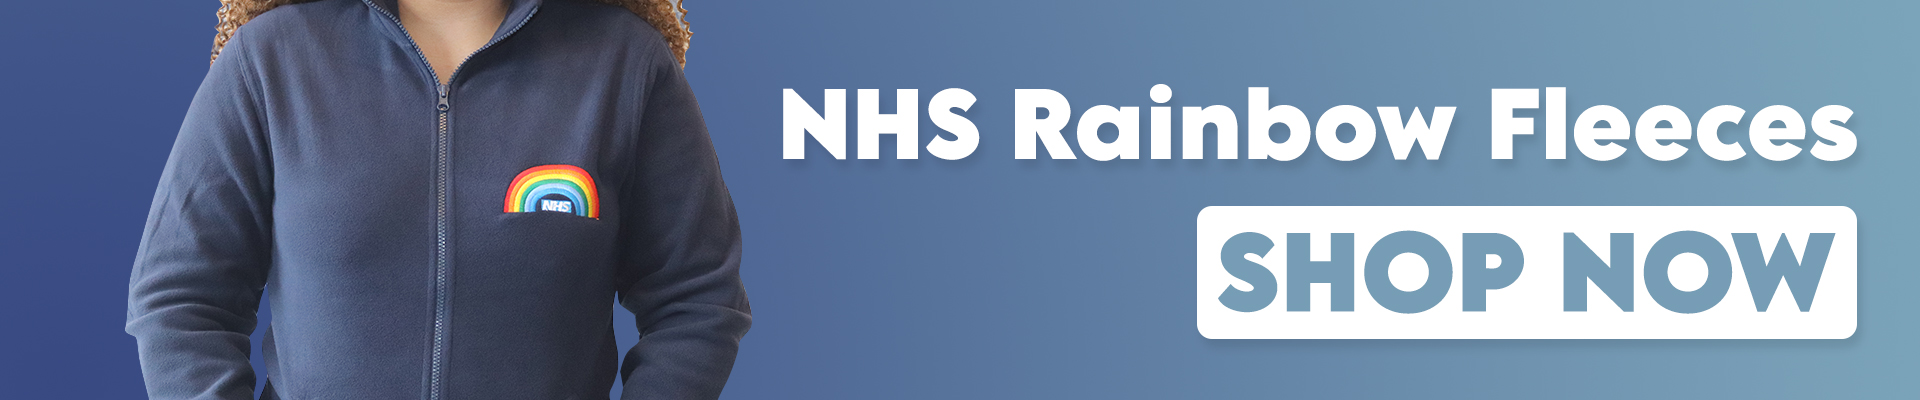 NHS_Rainbow_SiteHeaders_FLEECES